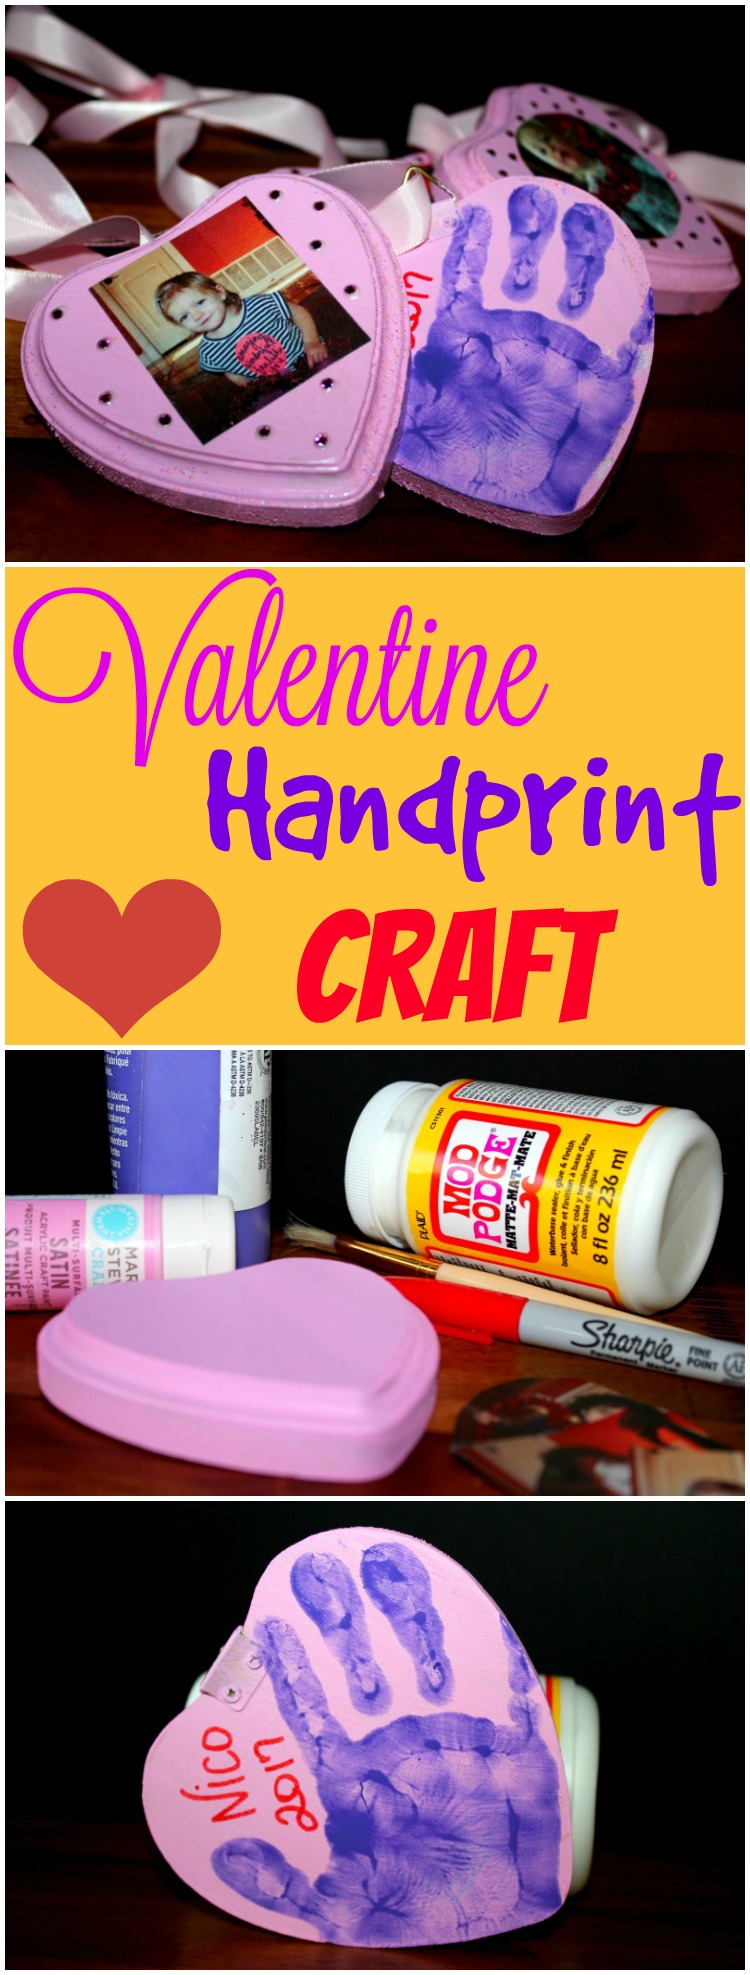 This is the perfect keepsake for little hands to make for loved ones for Valentine's Day.